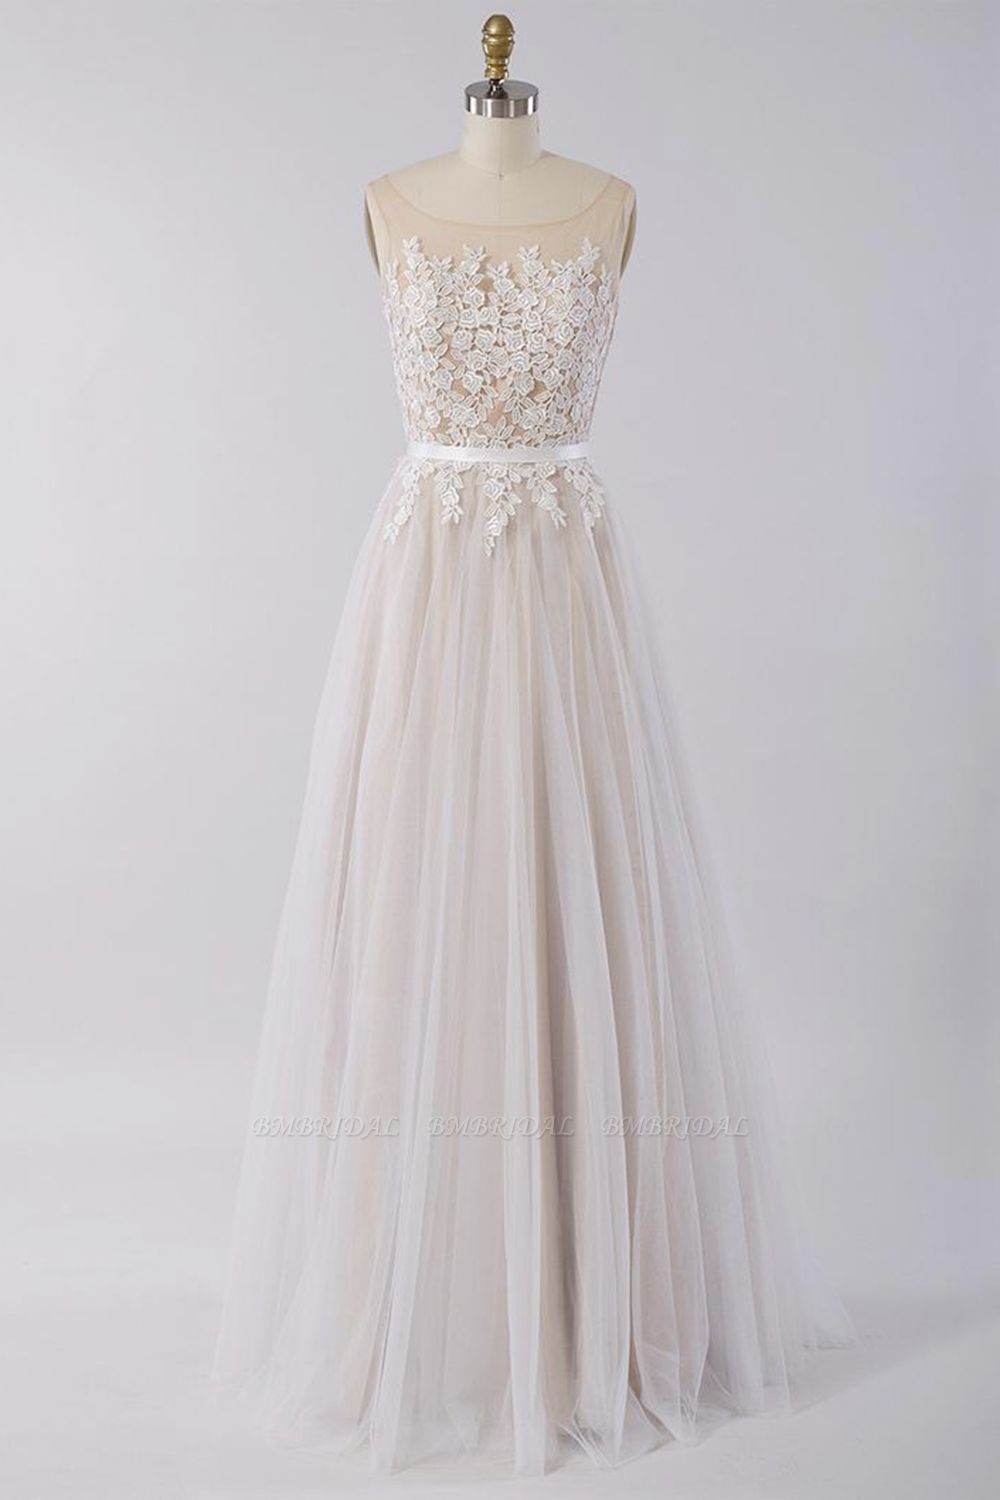 Affordable Sleeveless Jewel Appliques Wedding Dress Tulle Ruffles A-line Bridal Gowns On Sale